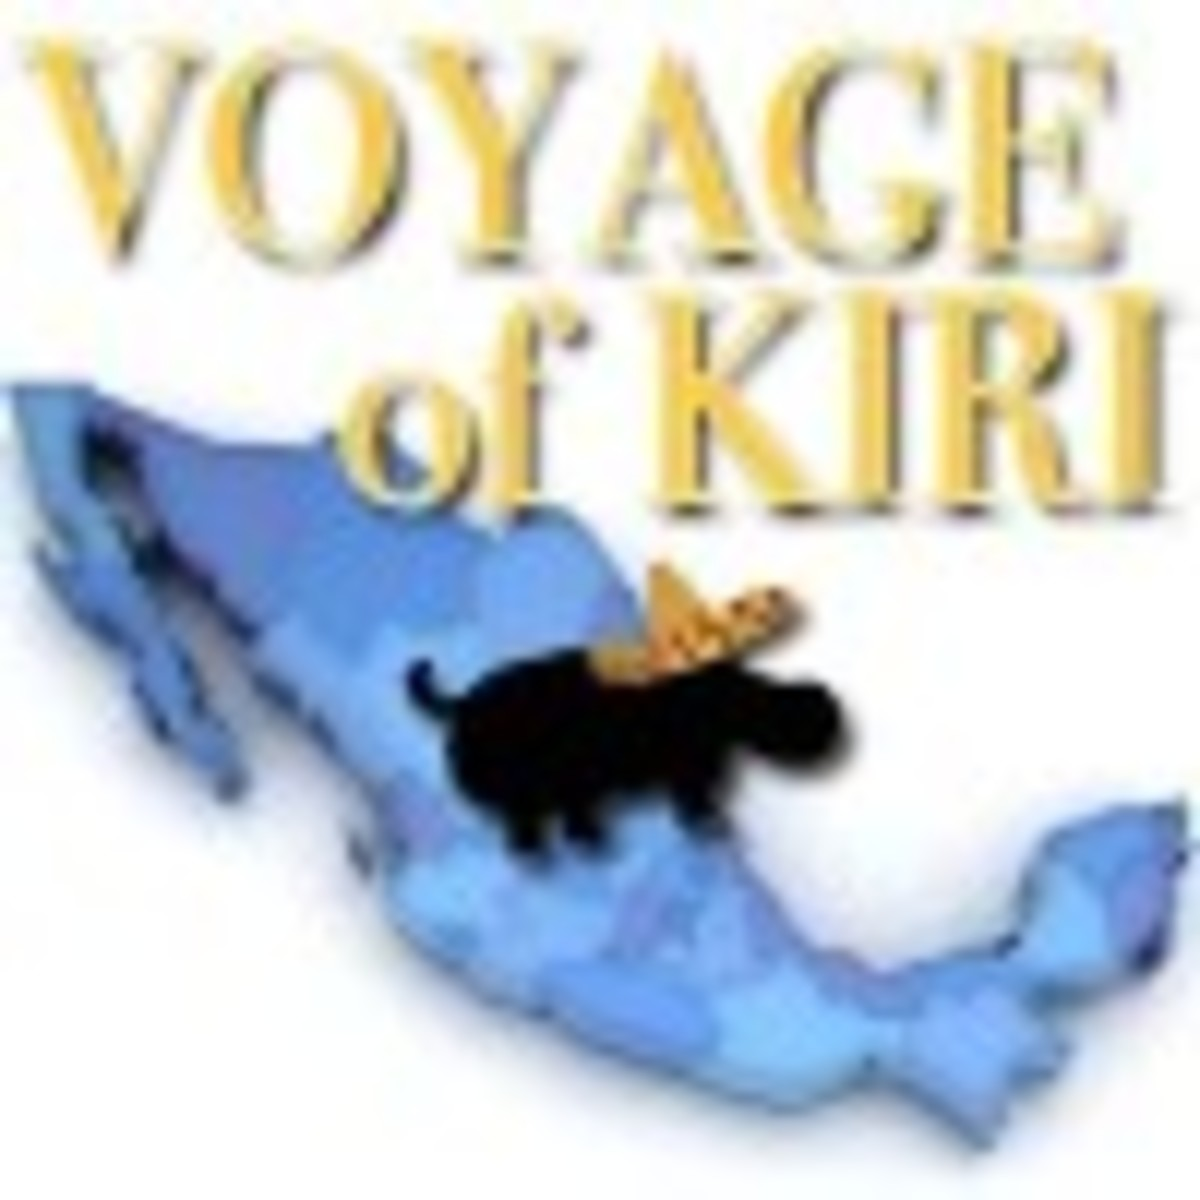 Click here for more posts from the Voyage of Kiri